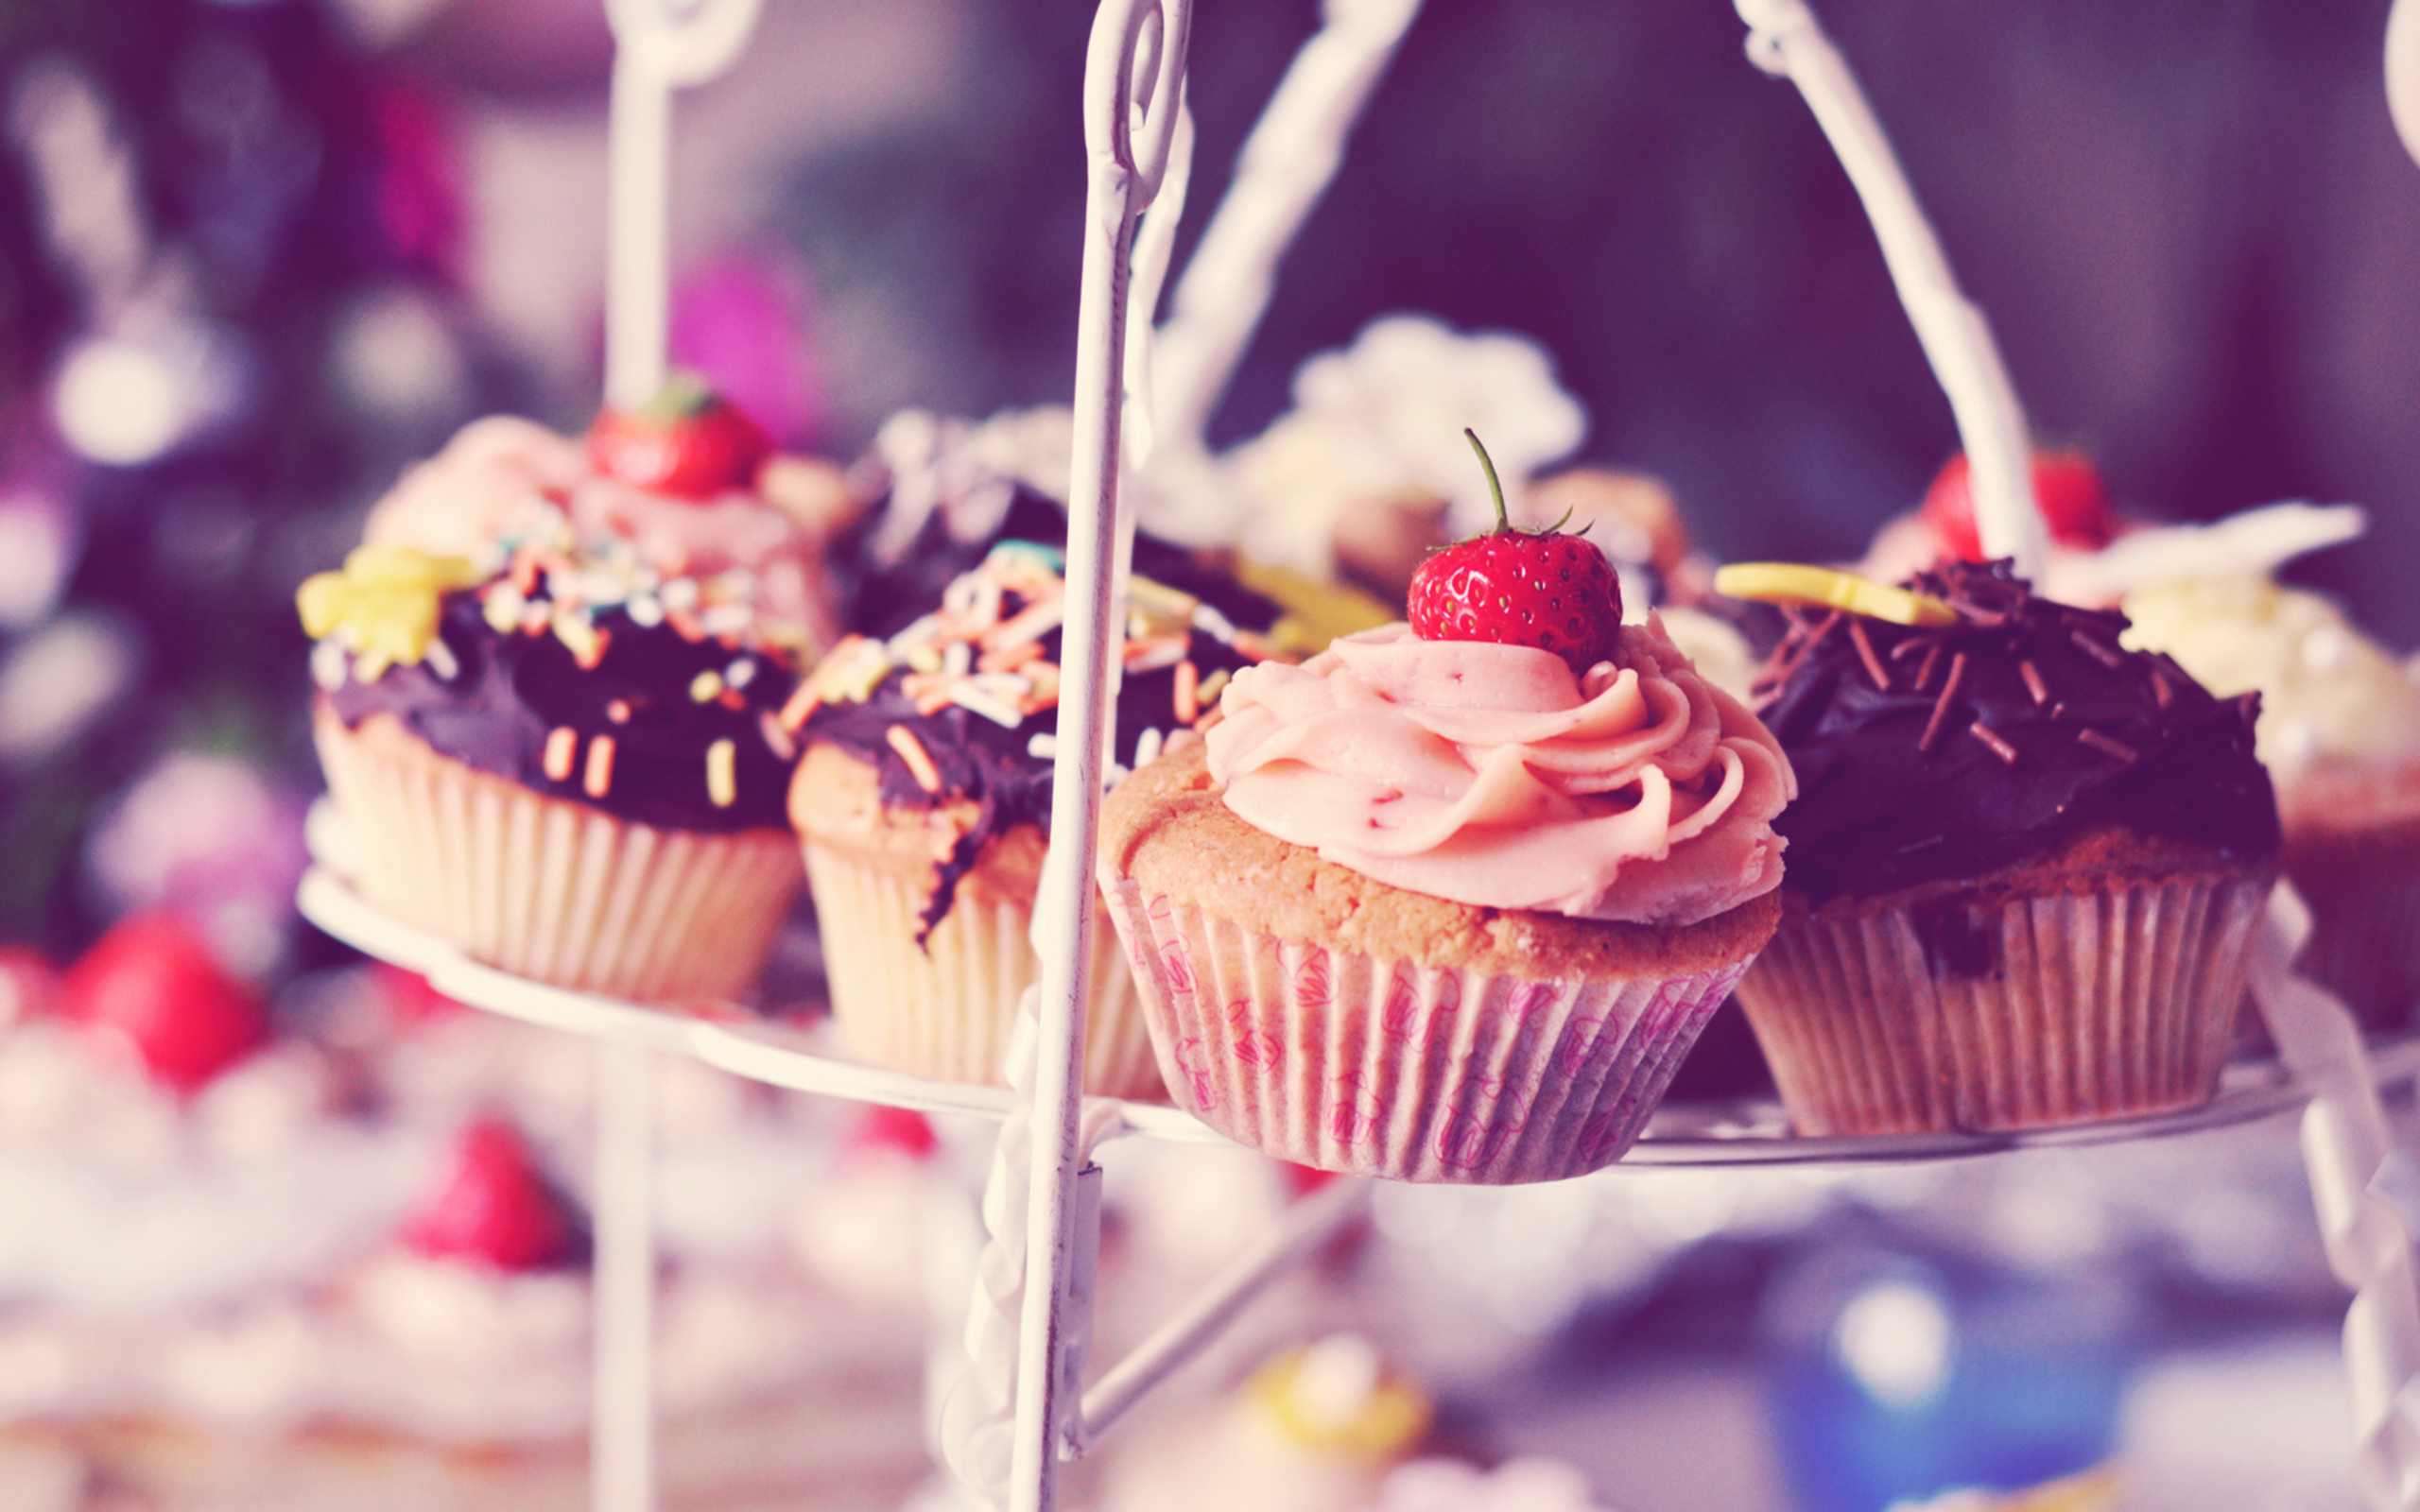 Cupcake Wallpaper HD